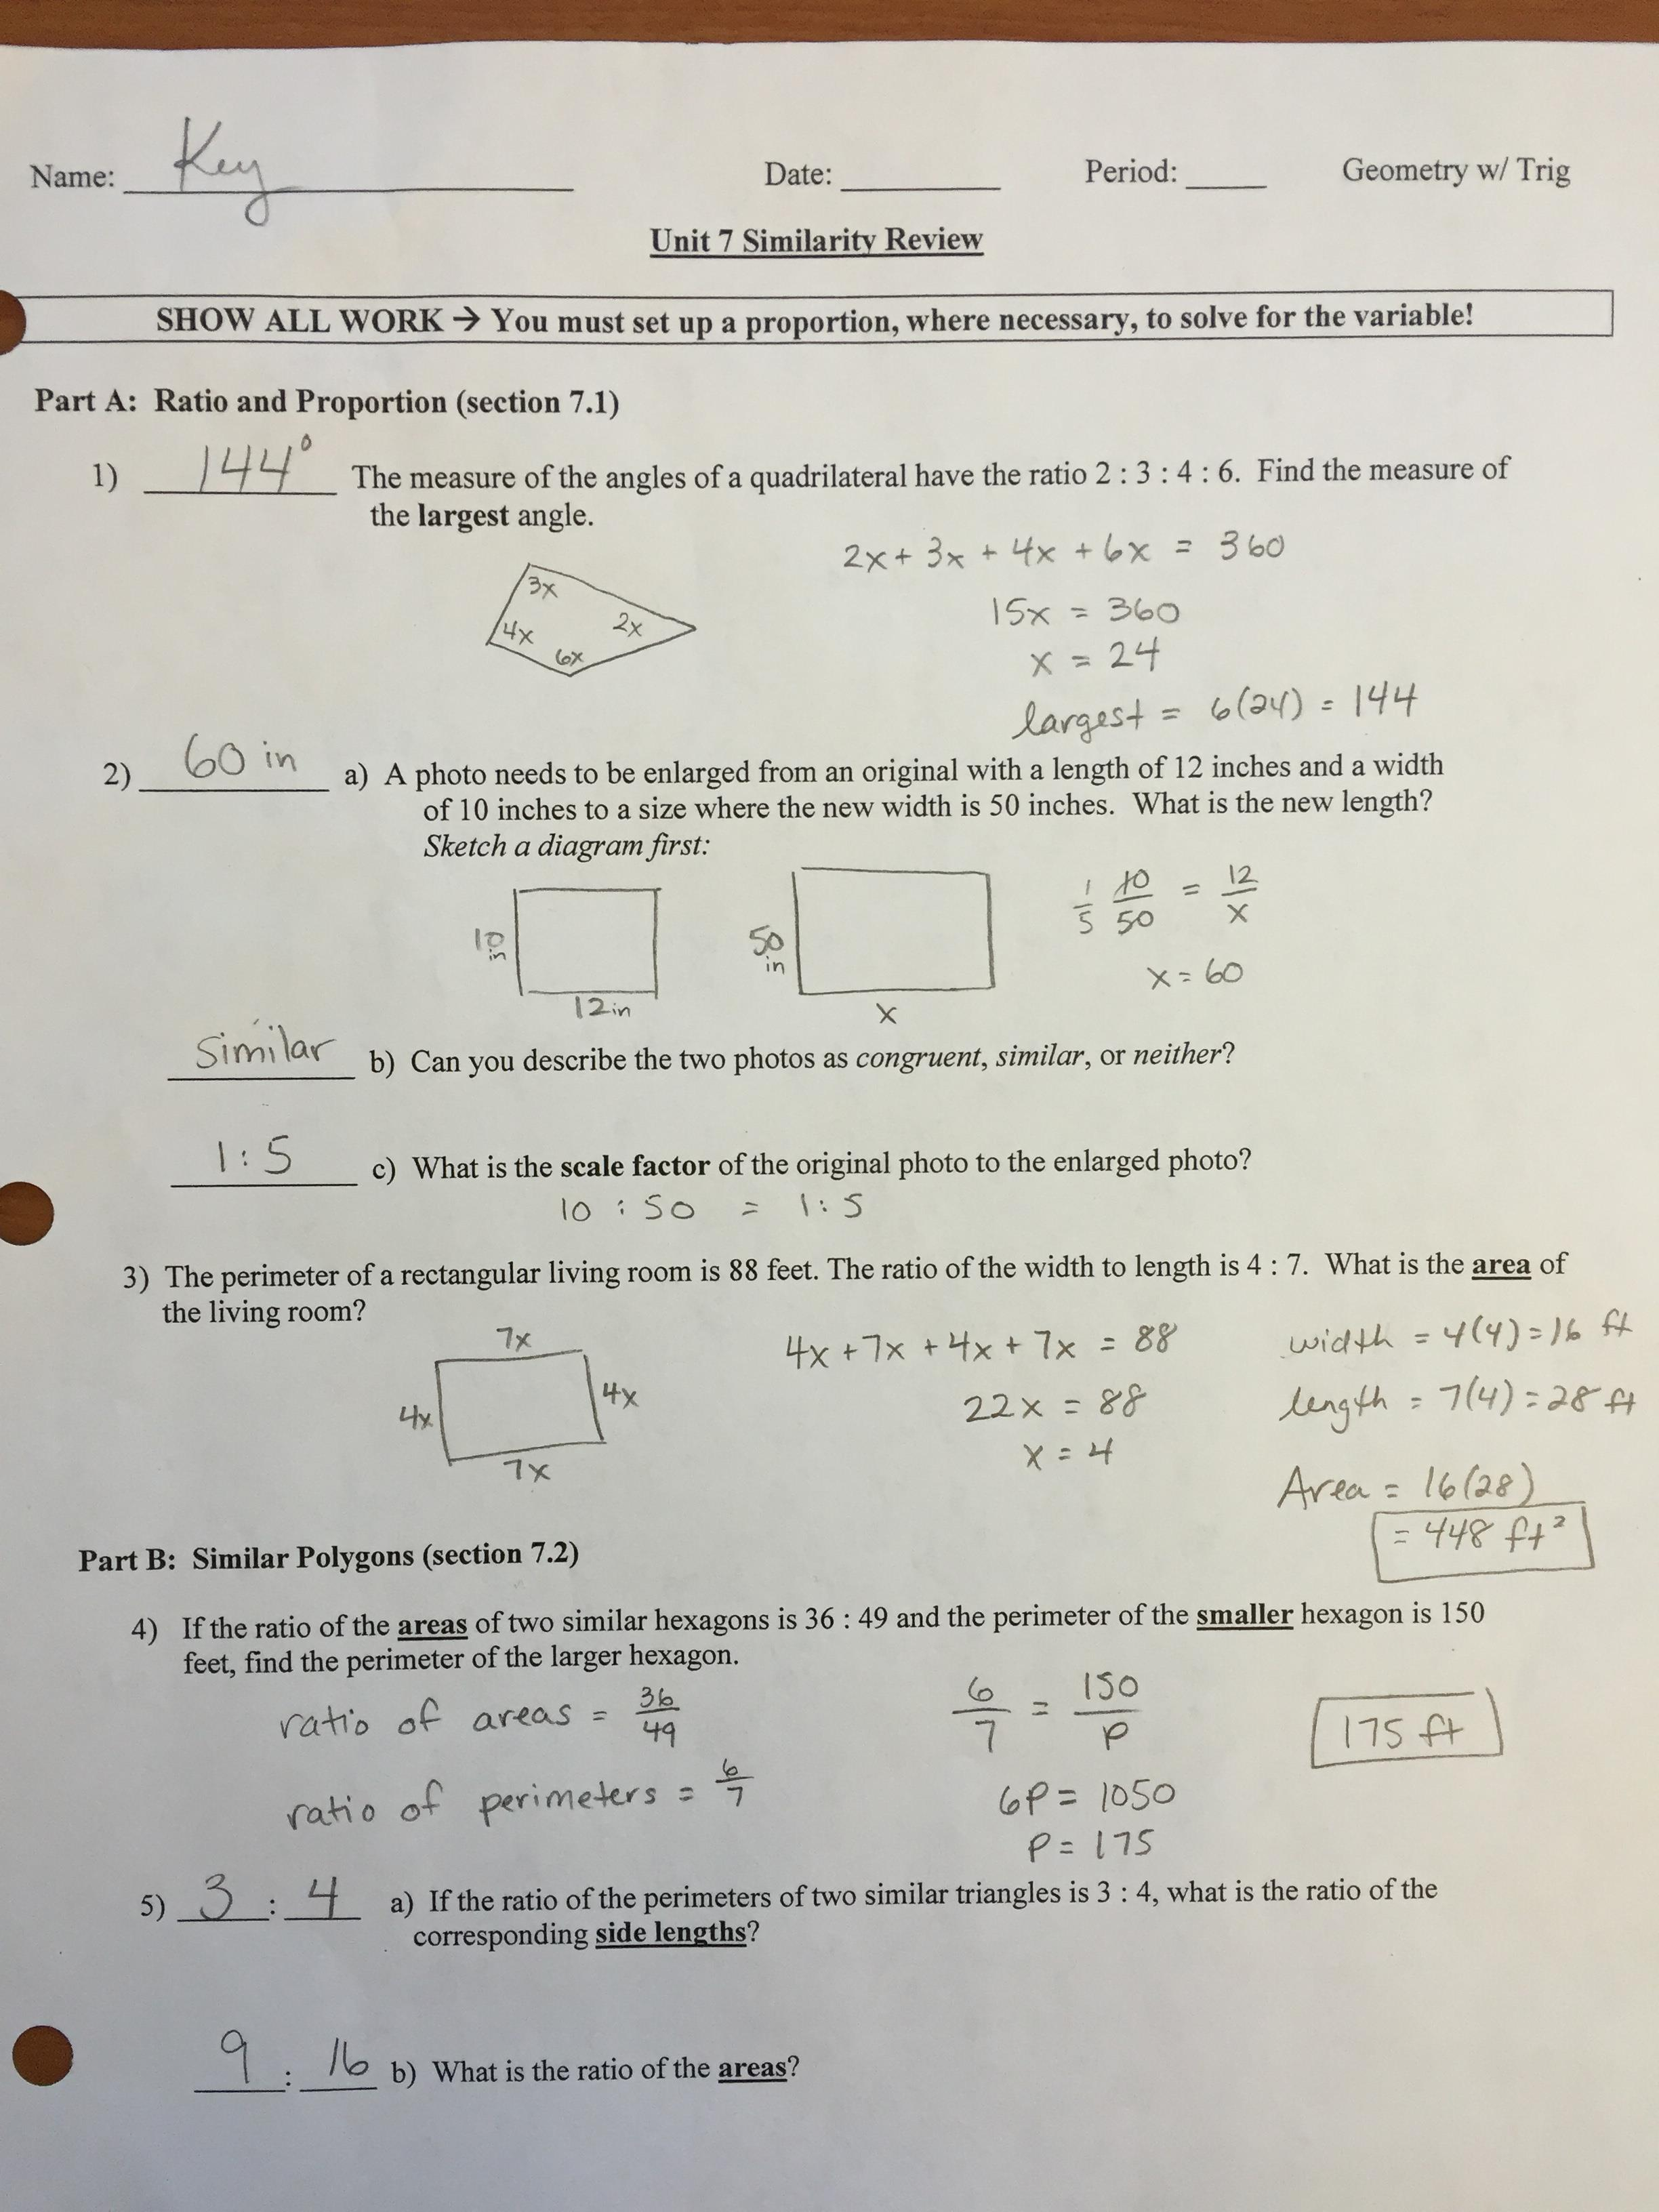 Geometry Worksheet Kites And T Zoids